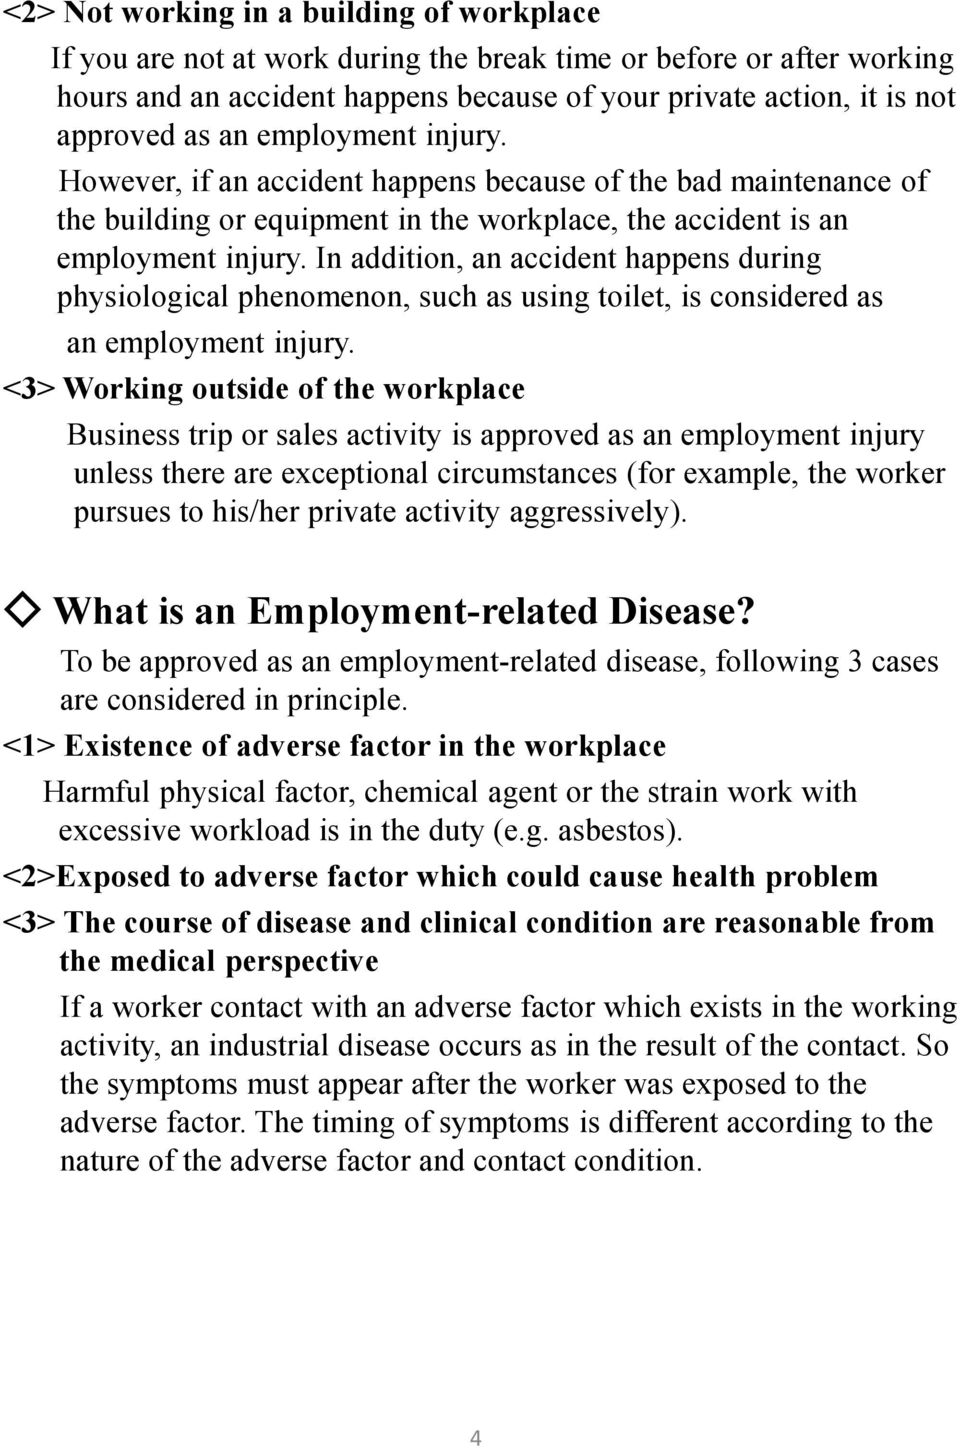 In addition, an accident happens during physiological phenomenon, such as using toilet, is considered as an employment injury.